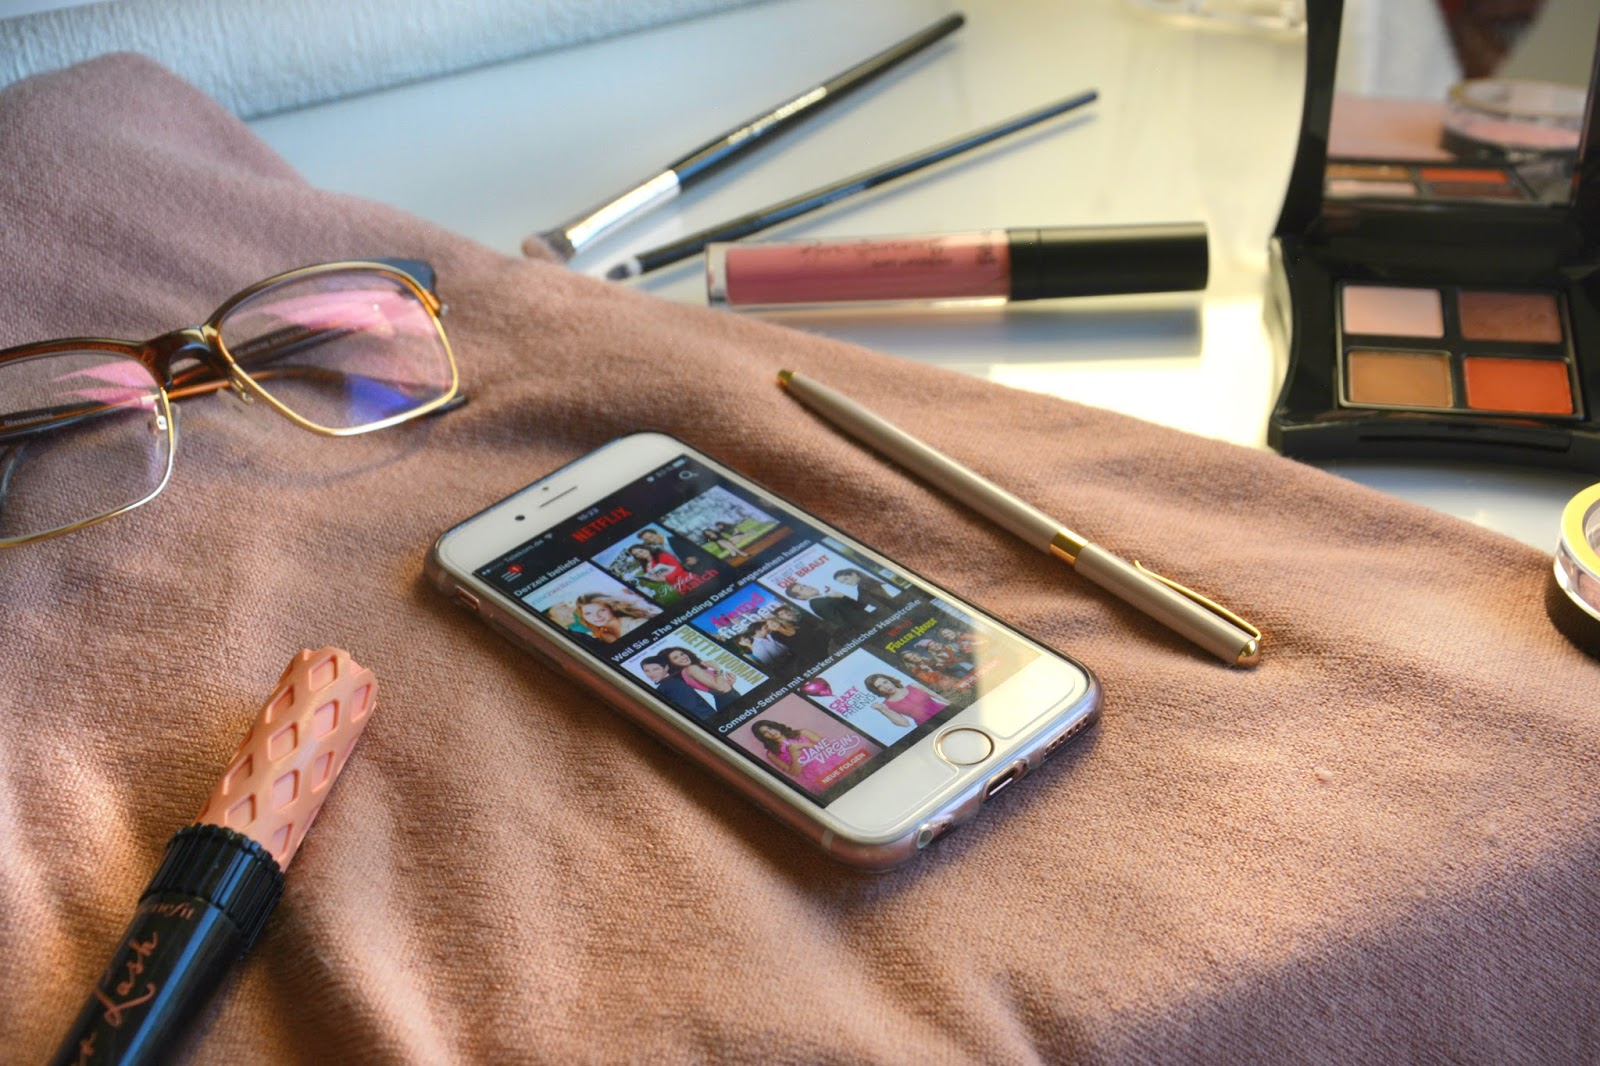 Netflix App on dusty pink background with glasses, Illamasque eyeshadow, Benefit Rollerlash, nude lipstick and Maxfactor Blush